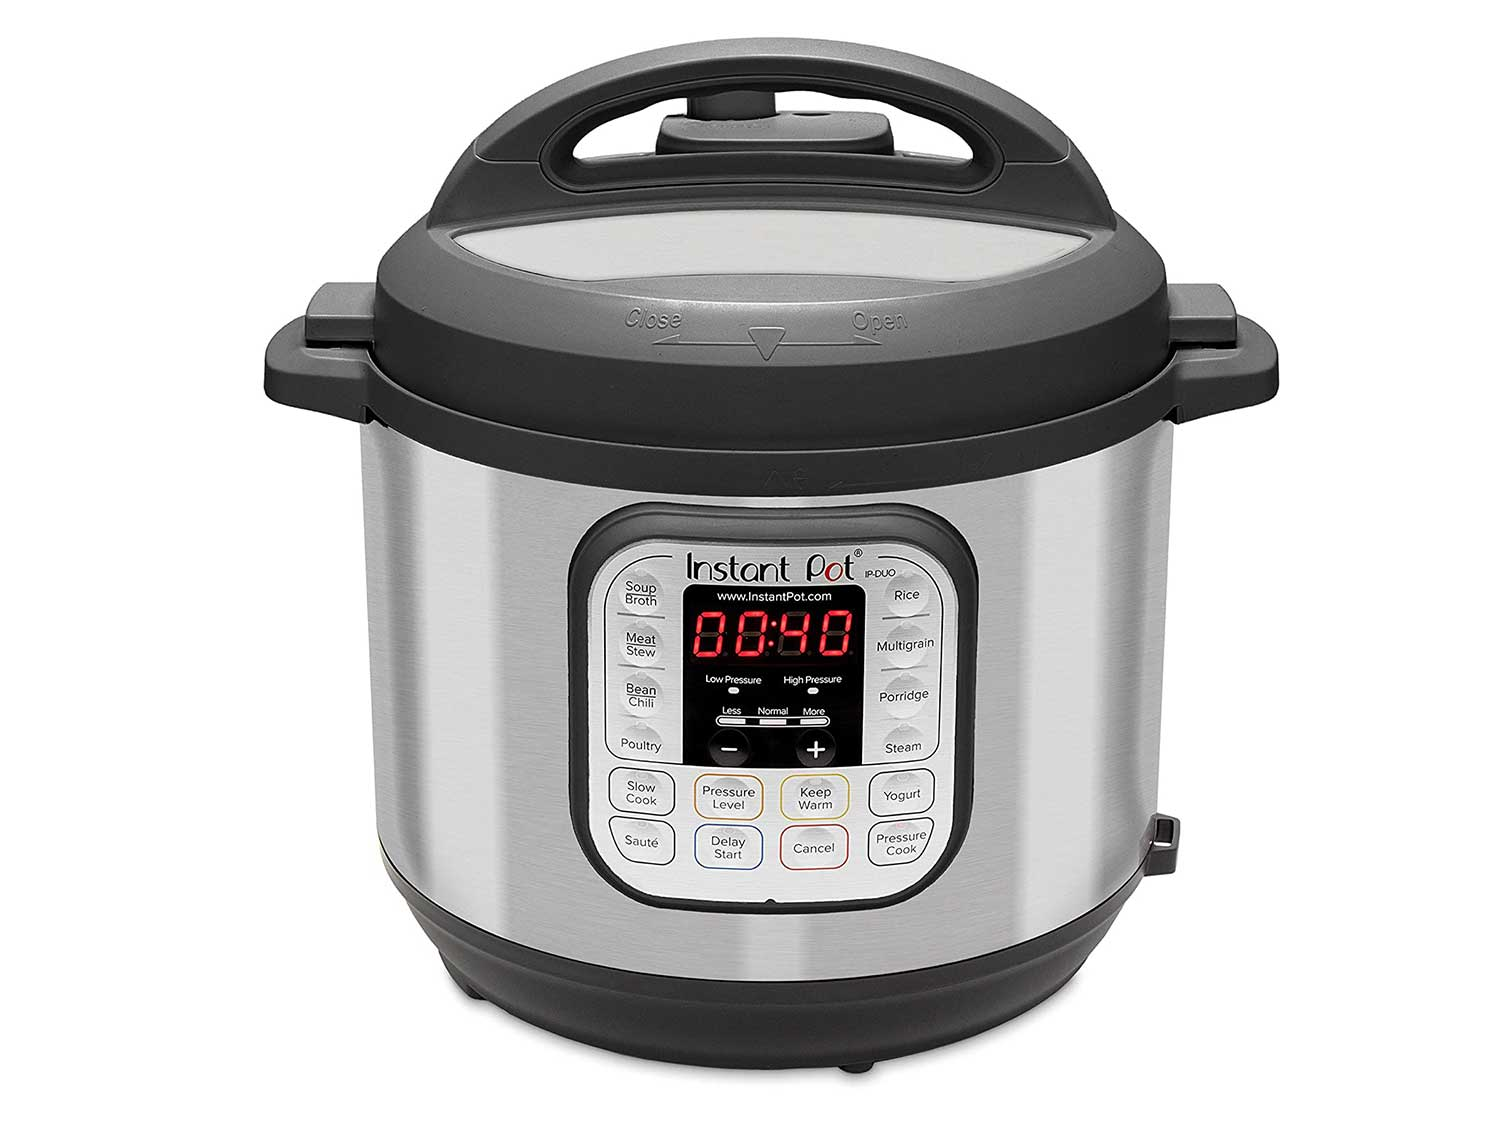 Instant Pot Duo 7-in-1 Electric Pressure Cooker, Slow Cooker, Rice Cooker, Steamer, Saute, Yogurt Maker, and Warmer